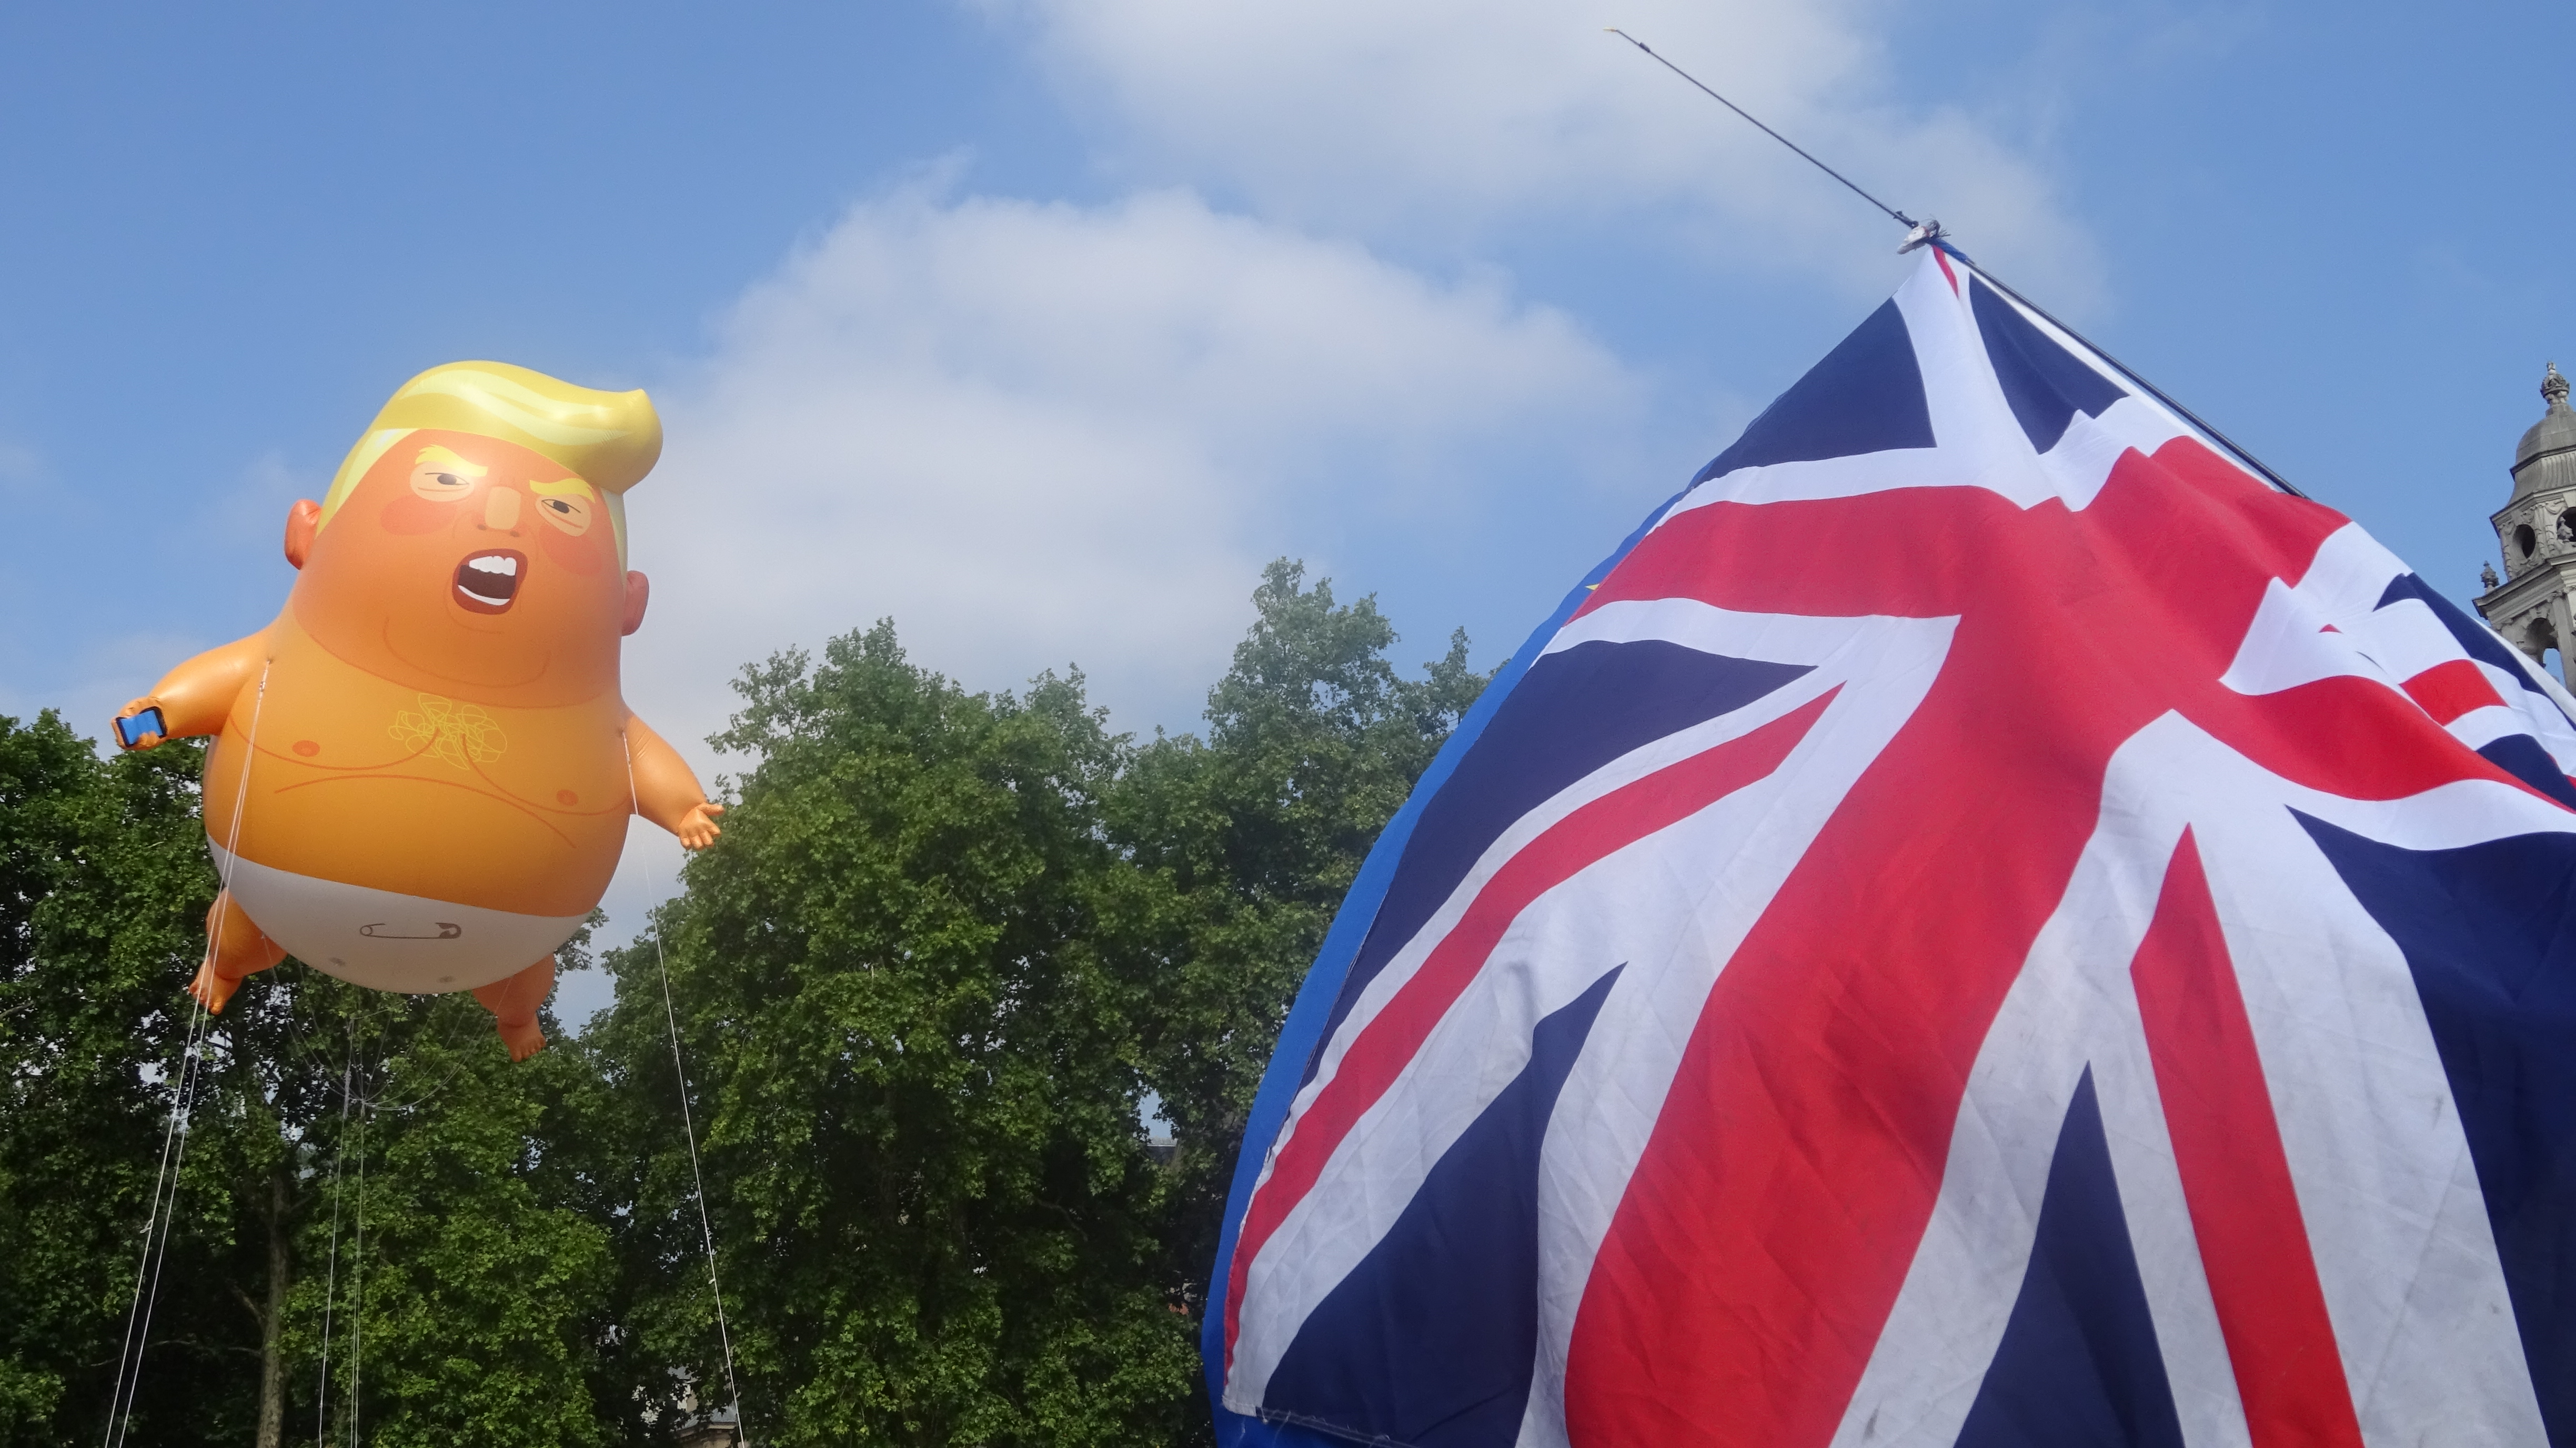 A balloon depicting Trump as an angry orange baby flies in Parliament Square, central London